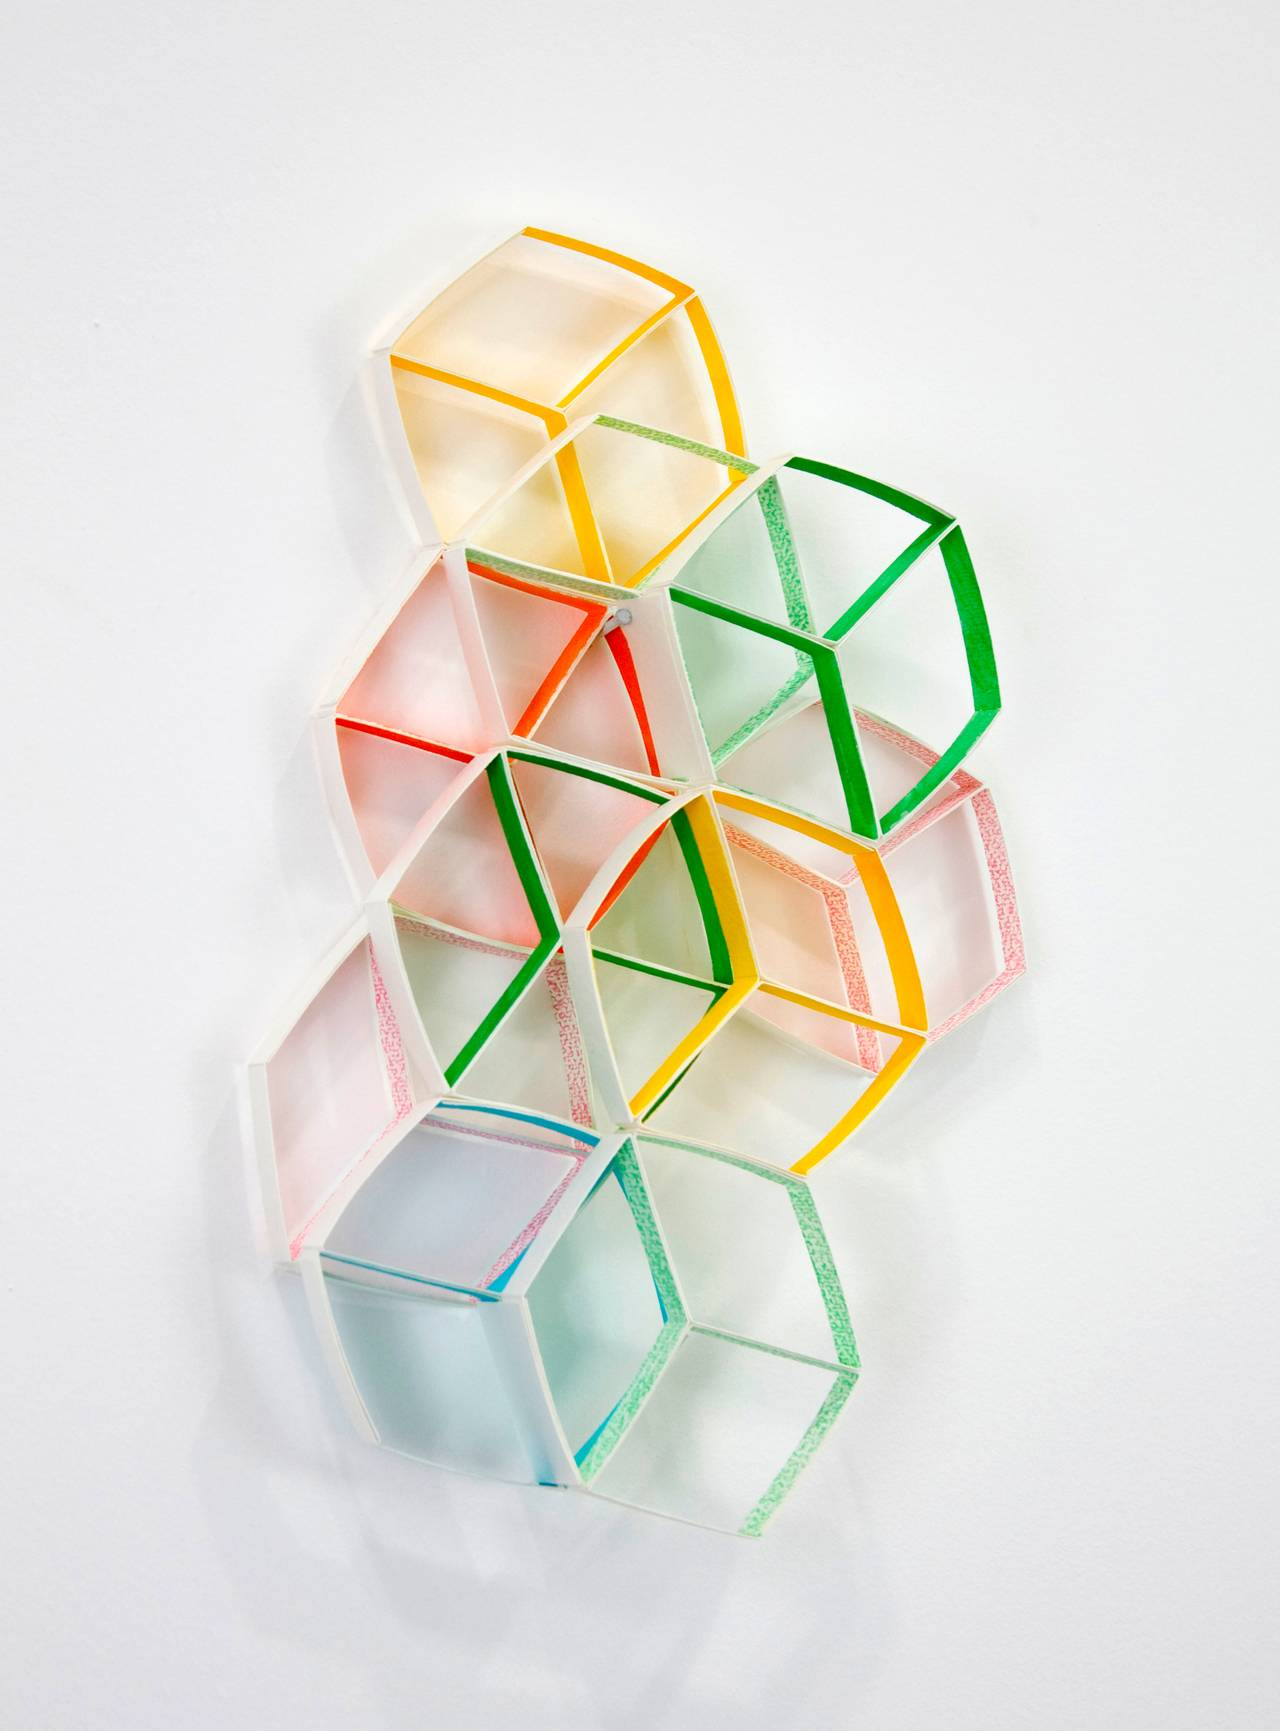 Study #3 for Modular Wall Installation: Hexagon (Cube)